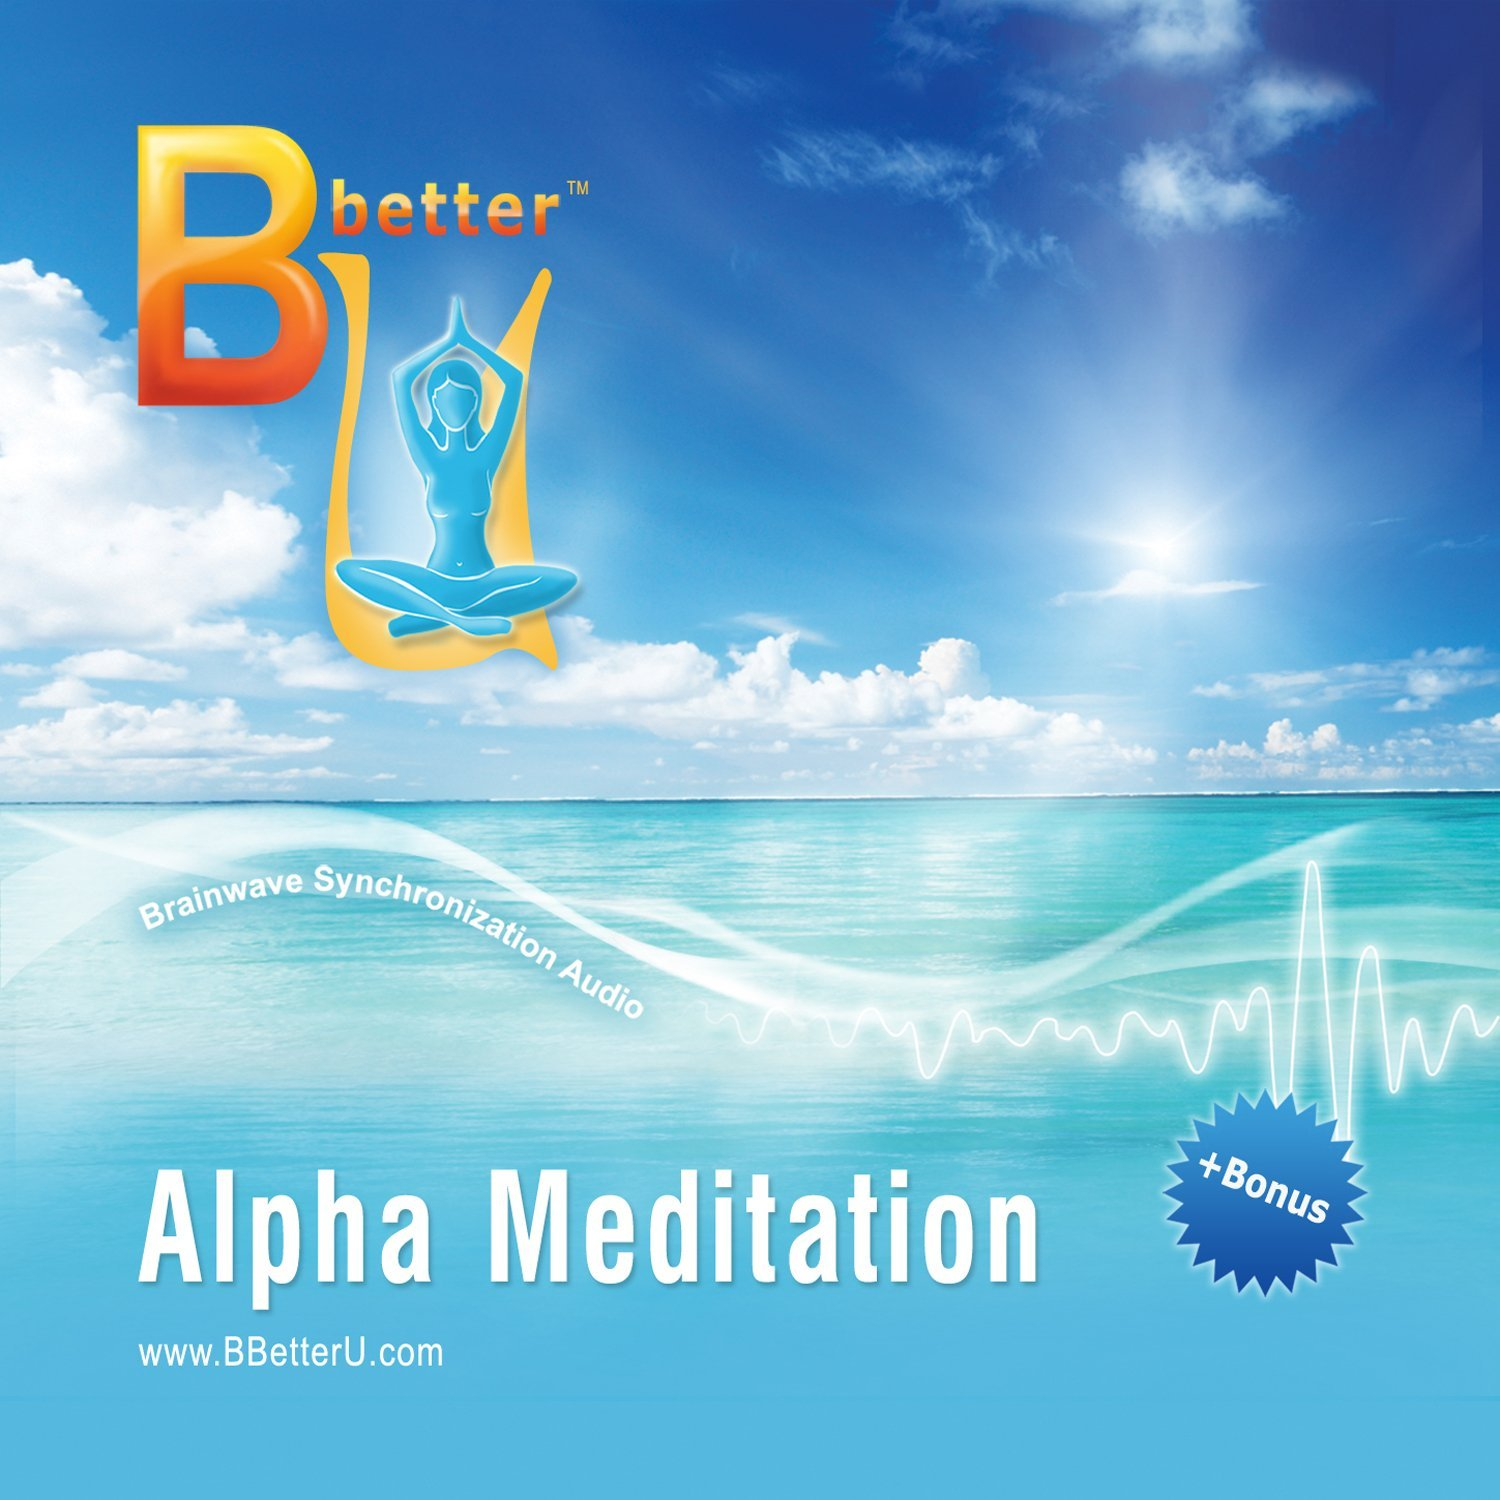 Image for Alpha Brainwave Meditation - Isochronic Tones Music CD